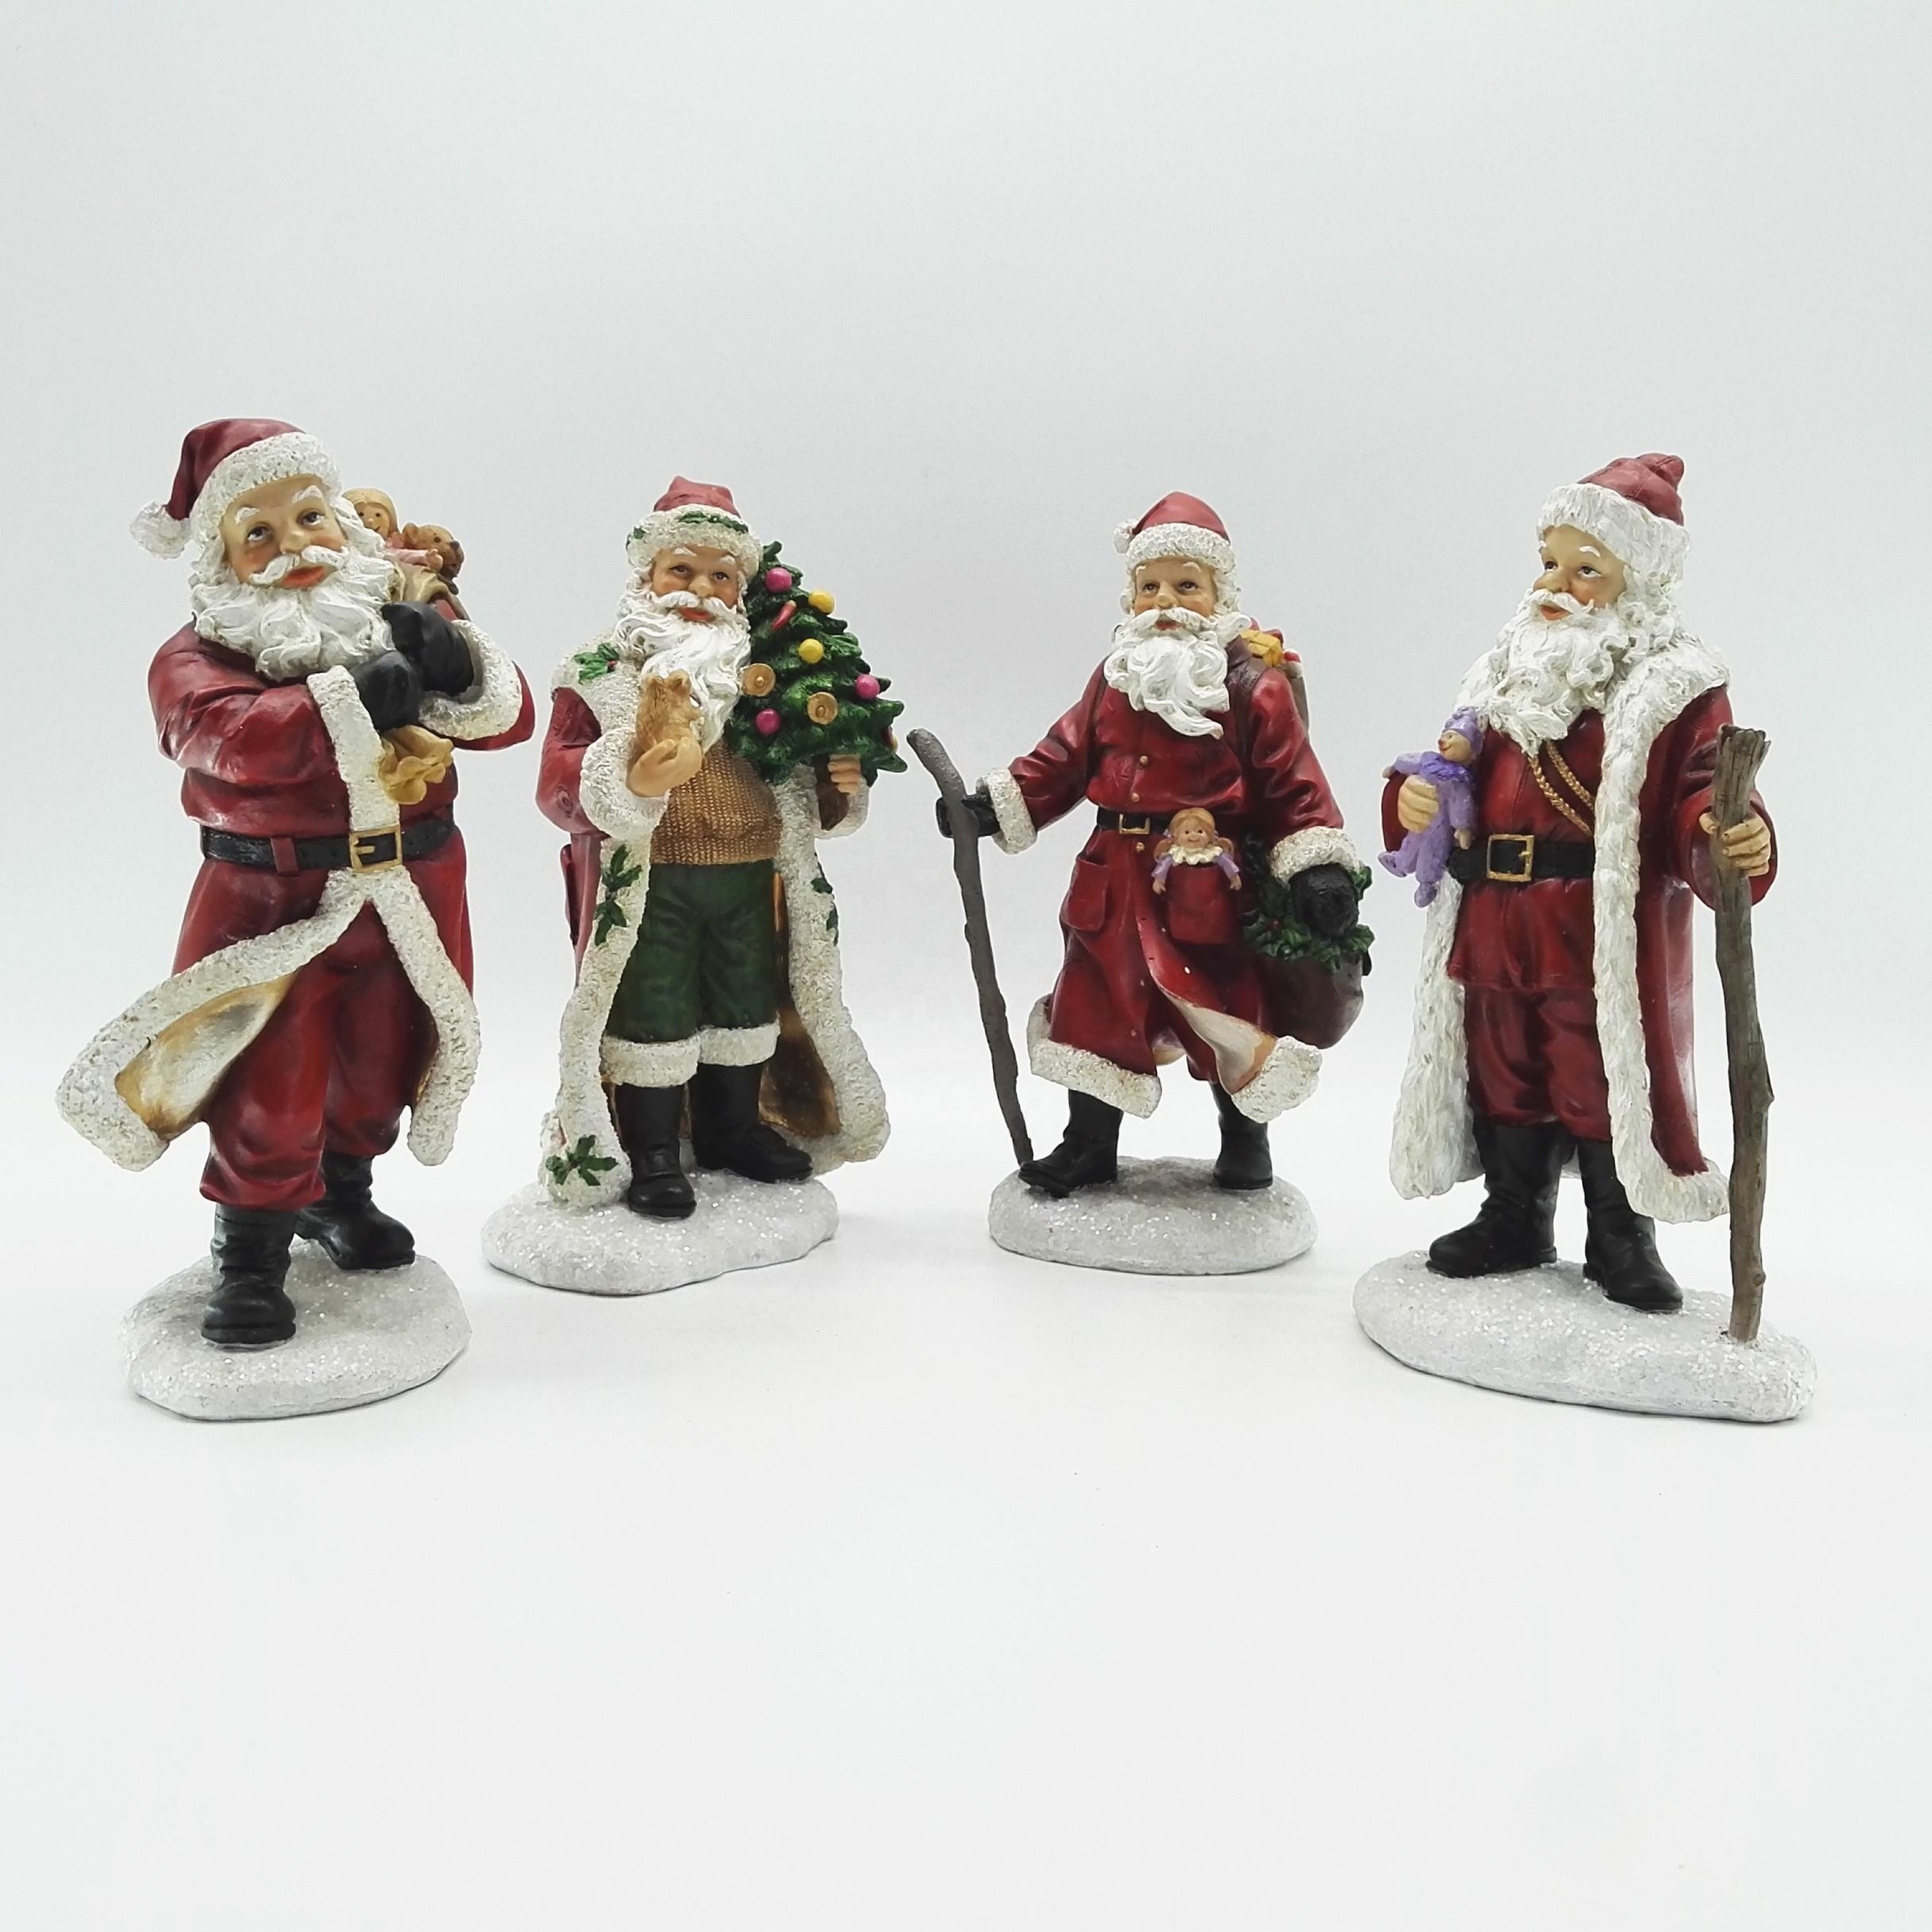 Wholesale 2020 new product Resin Holiday Red Antique tiny standing Santa Claus Figurine Christmas everyday home decor